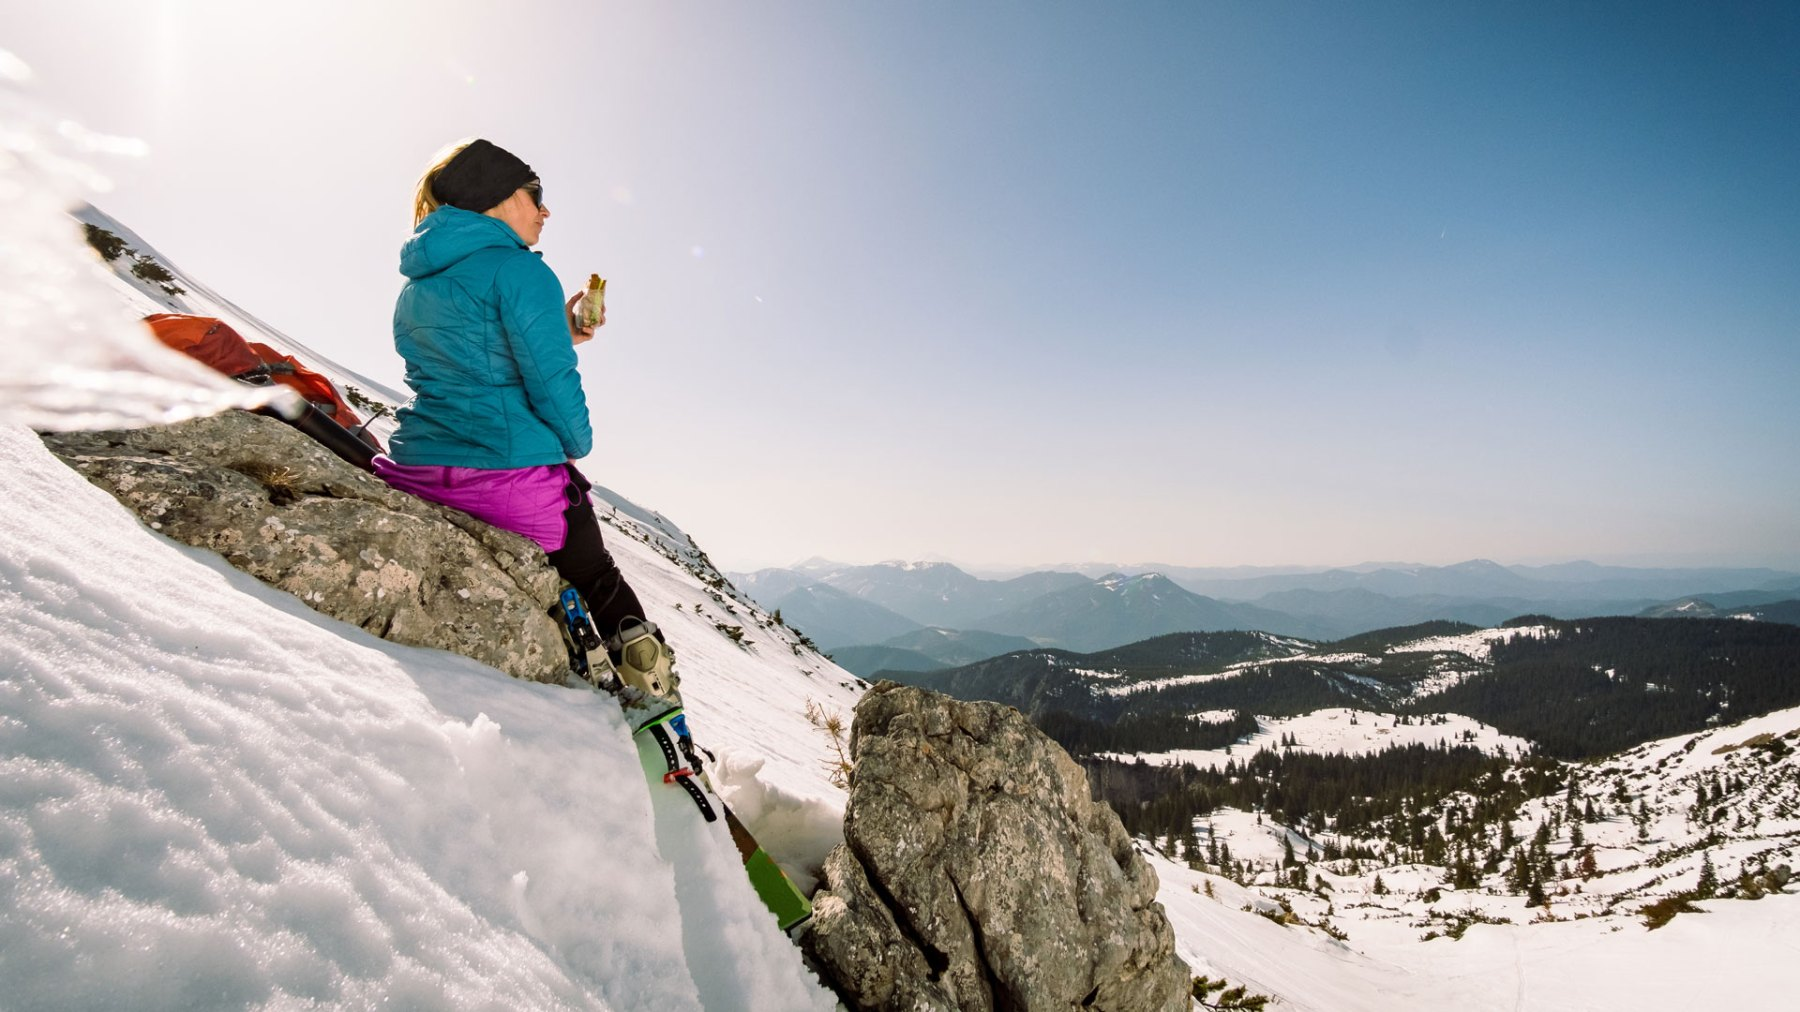 Winter Camping 101: Here Are 7 Tips to Get You Started